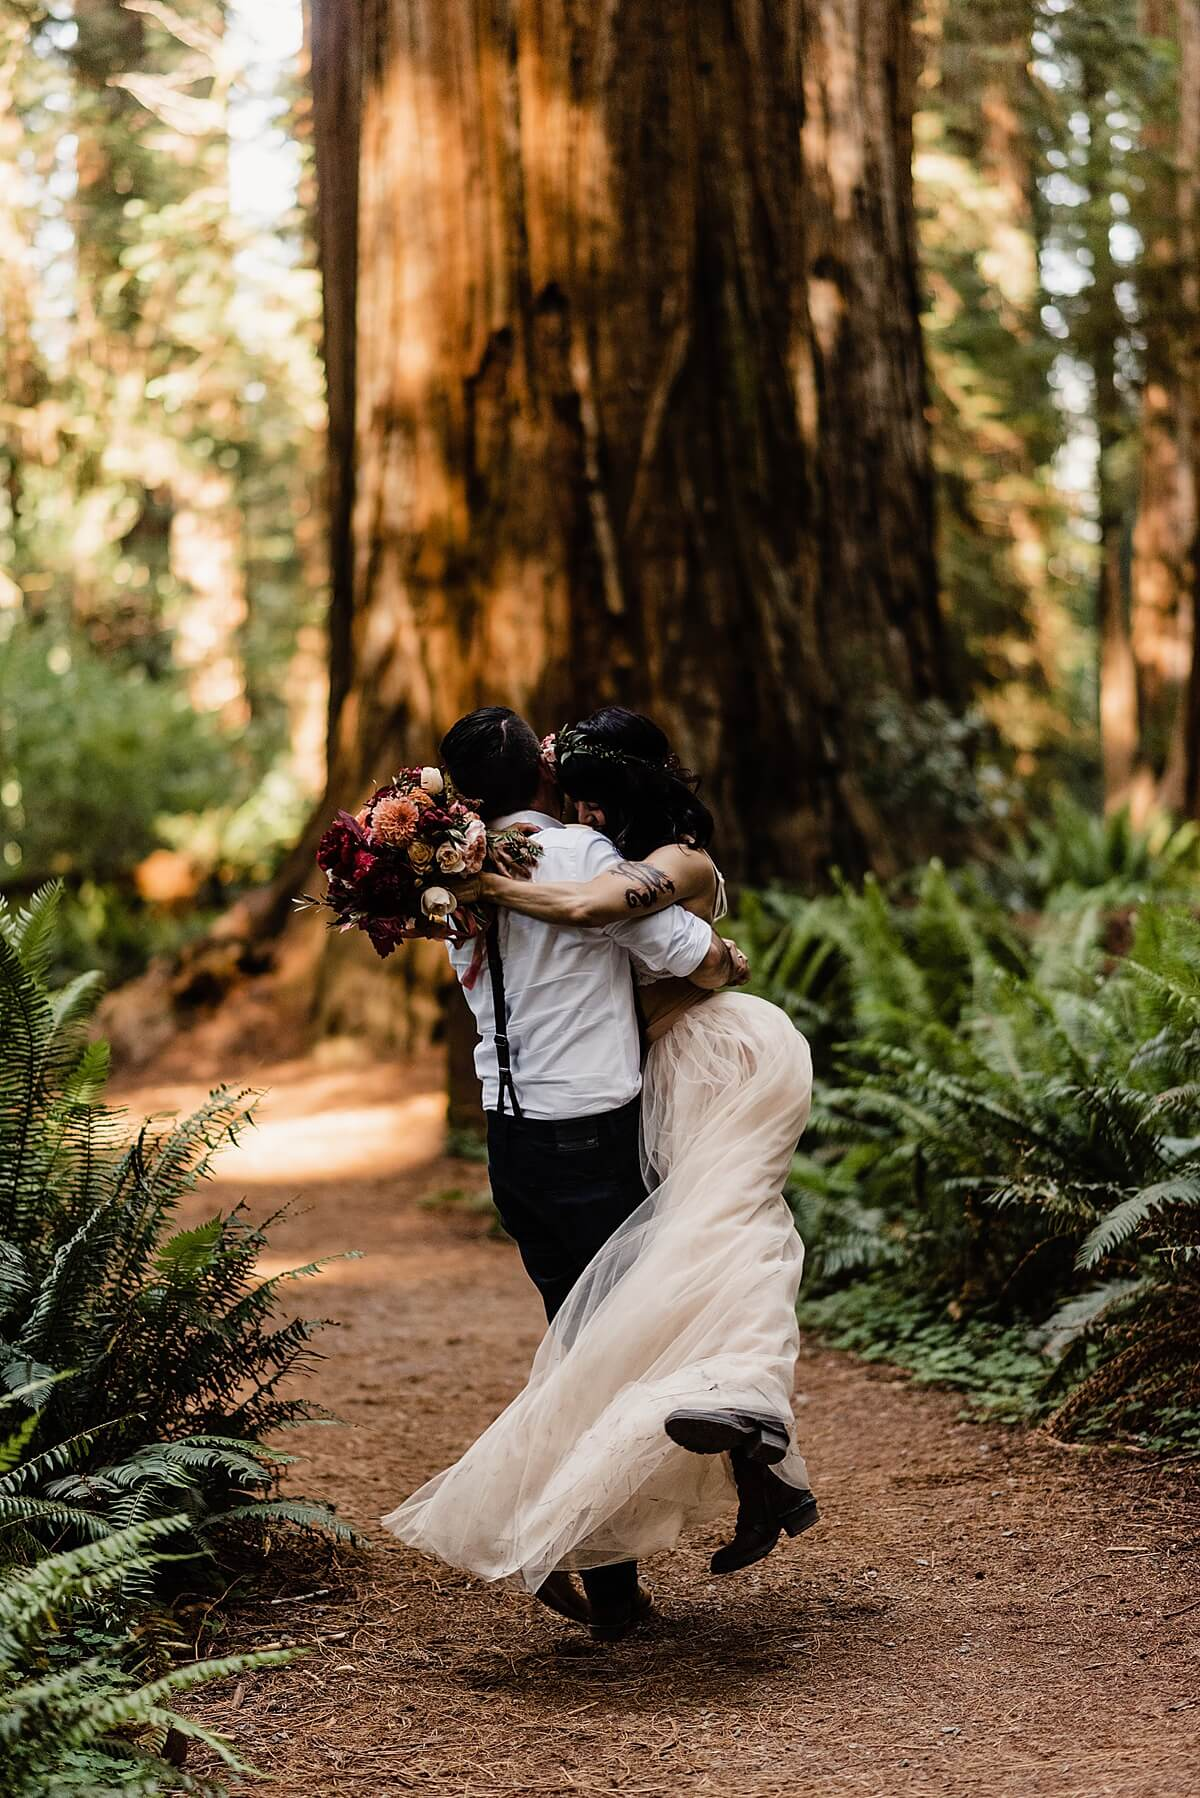 Allison-Brooks-Jedediah-Smiith-Redwoods-Adventure-Elopement-Wedding-S-Photography-Blog_0034.jpg